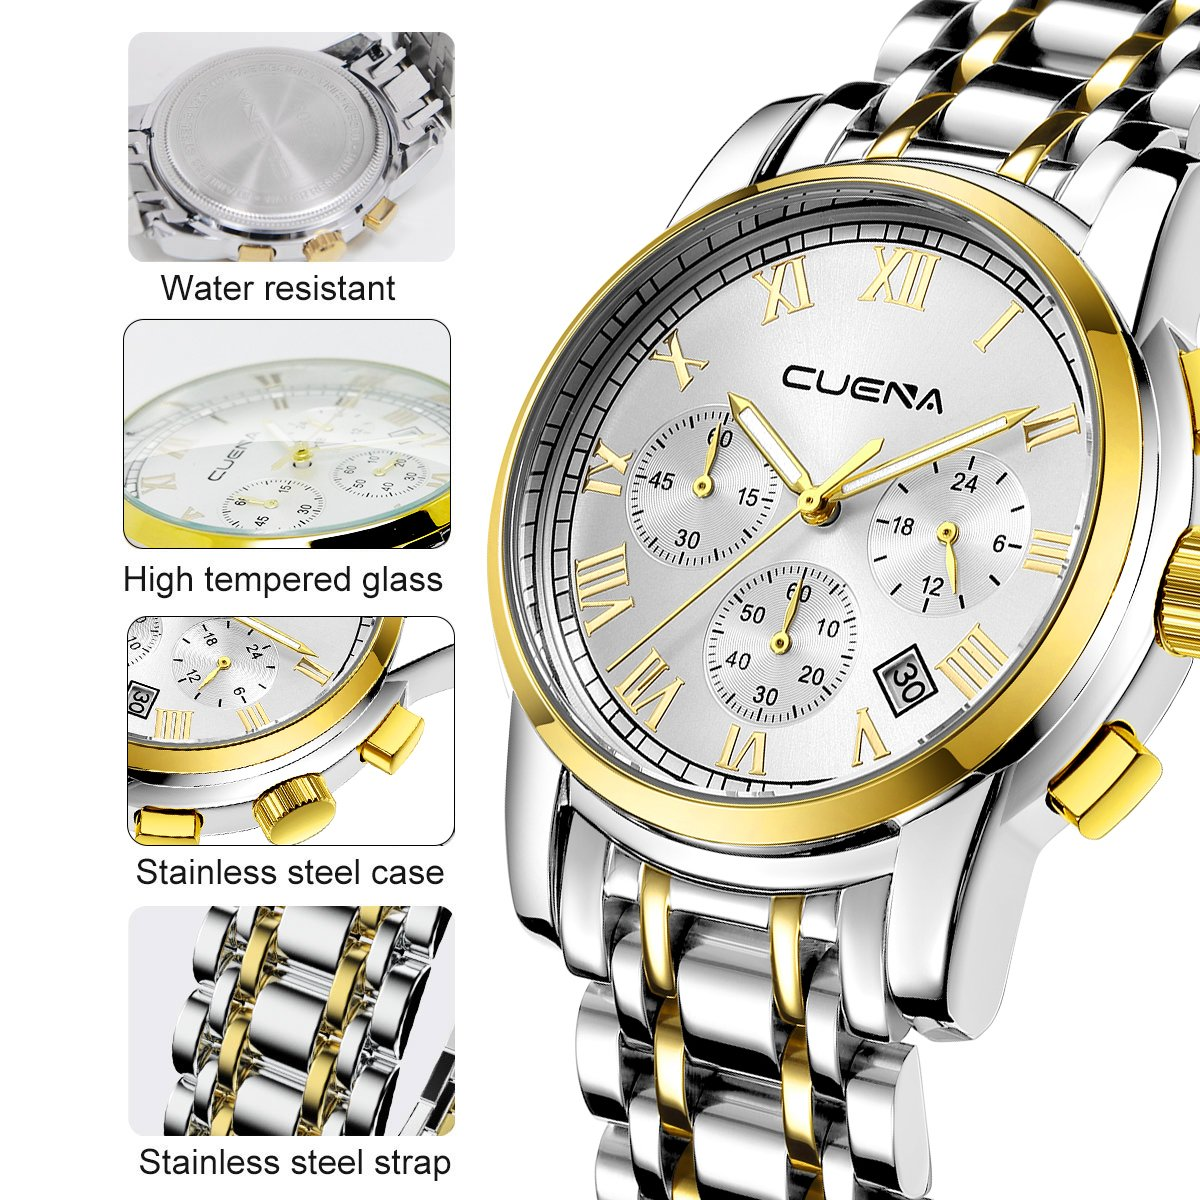 Men\'s Stainless Steel Watch-Luxury Casual Analog Roman Quartz Calender Watch for Men by CUENA